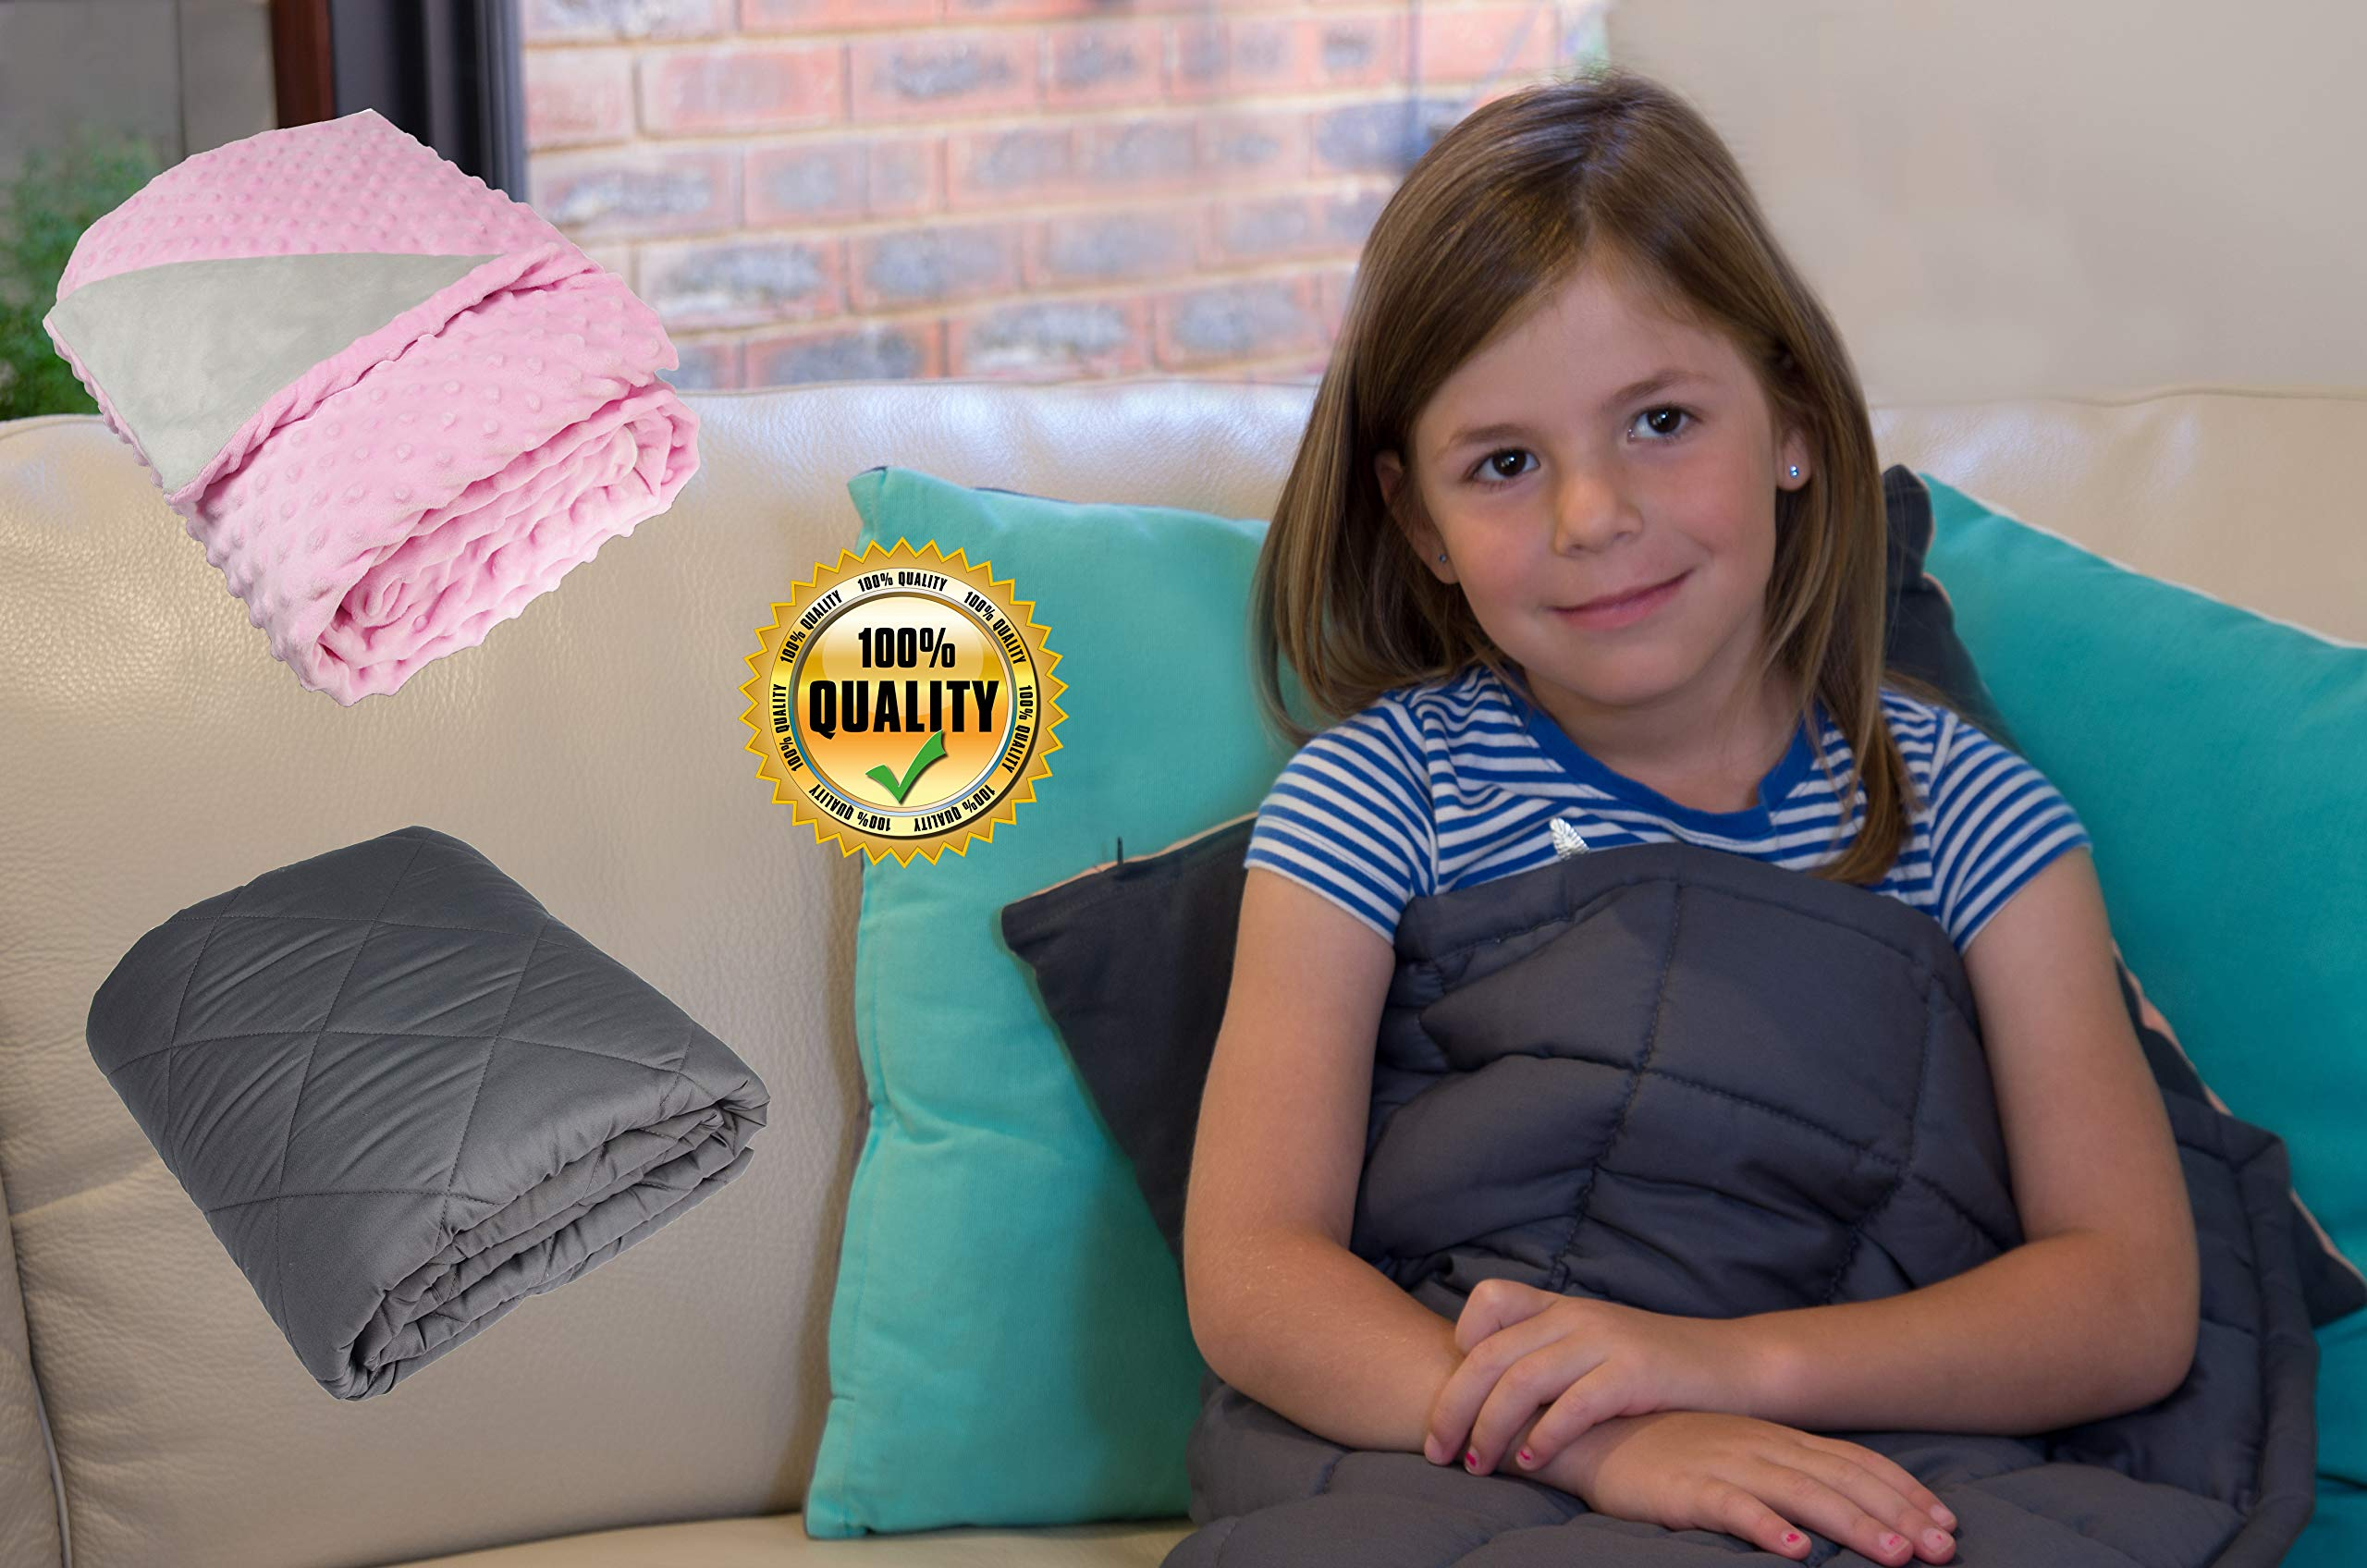 Bel Regalo Weighted Blanket for Kids-Heavy Blanket for Children, Cotton Grey Blanket with Soft Plush Minky Cover (Pink 5lb 36'' W x 48'' L) by Bel Regalo